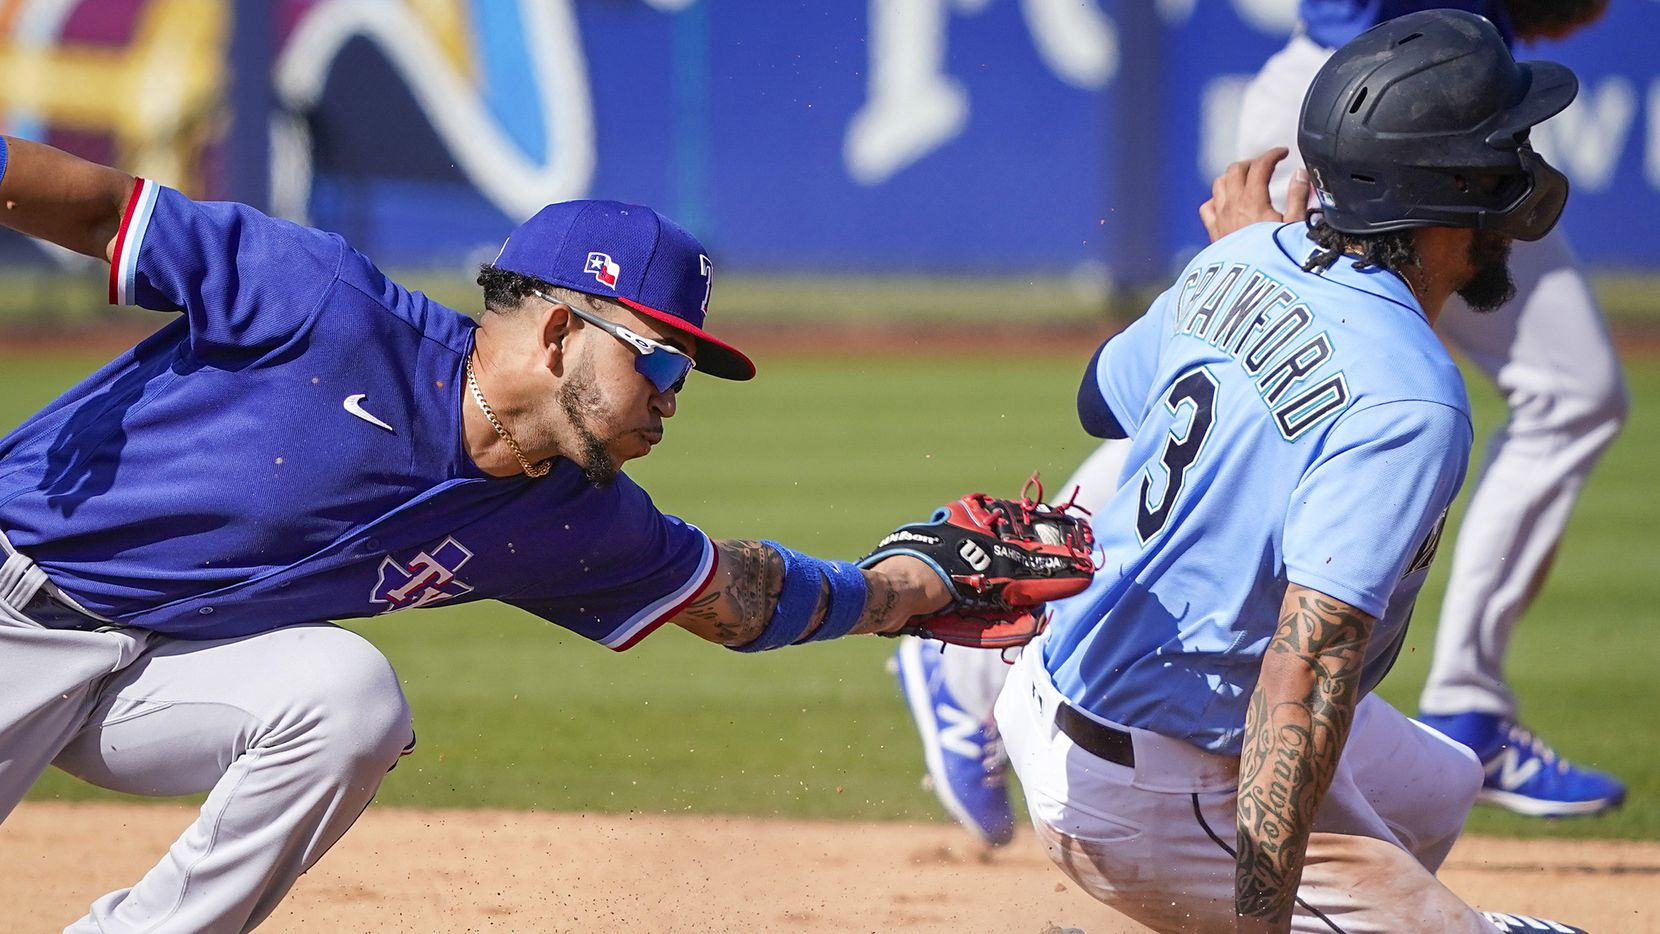 Rangers infielder Anderson Tejeda can't make the tag as Seattle Mariners shortstop J.P. Crawford steals second base during the fifth inning of a spring training game at Peoria Sports Complex on Sunday, Feb. 23, 2020, in Peoria, Ariz.